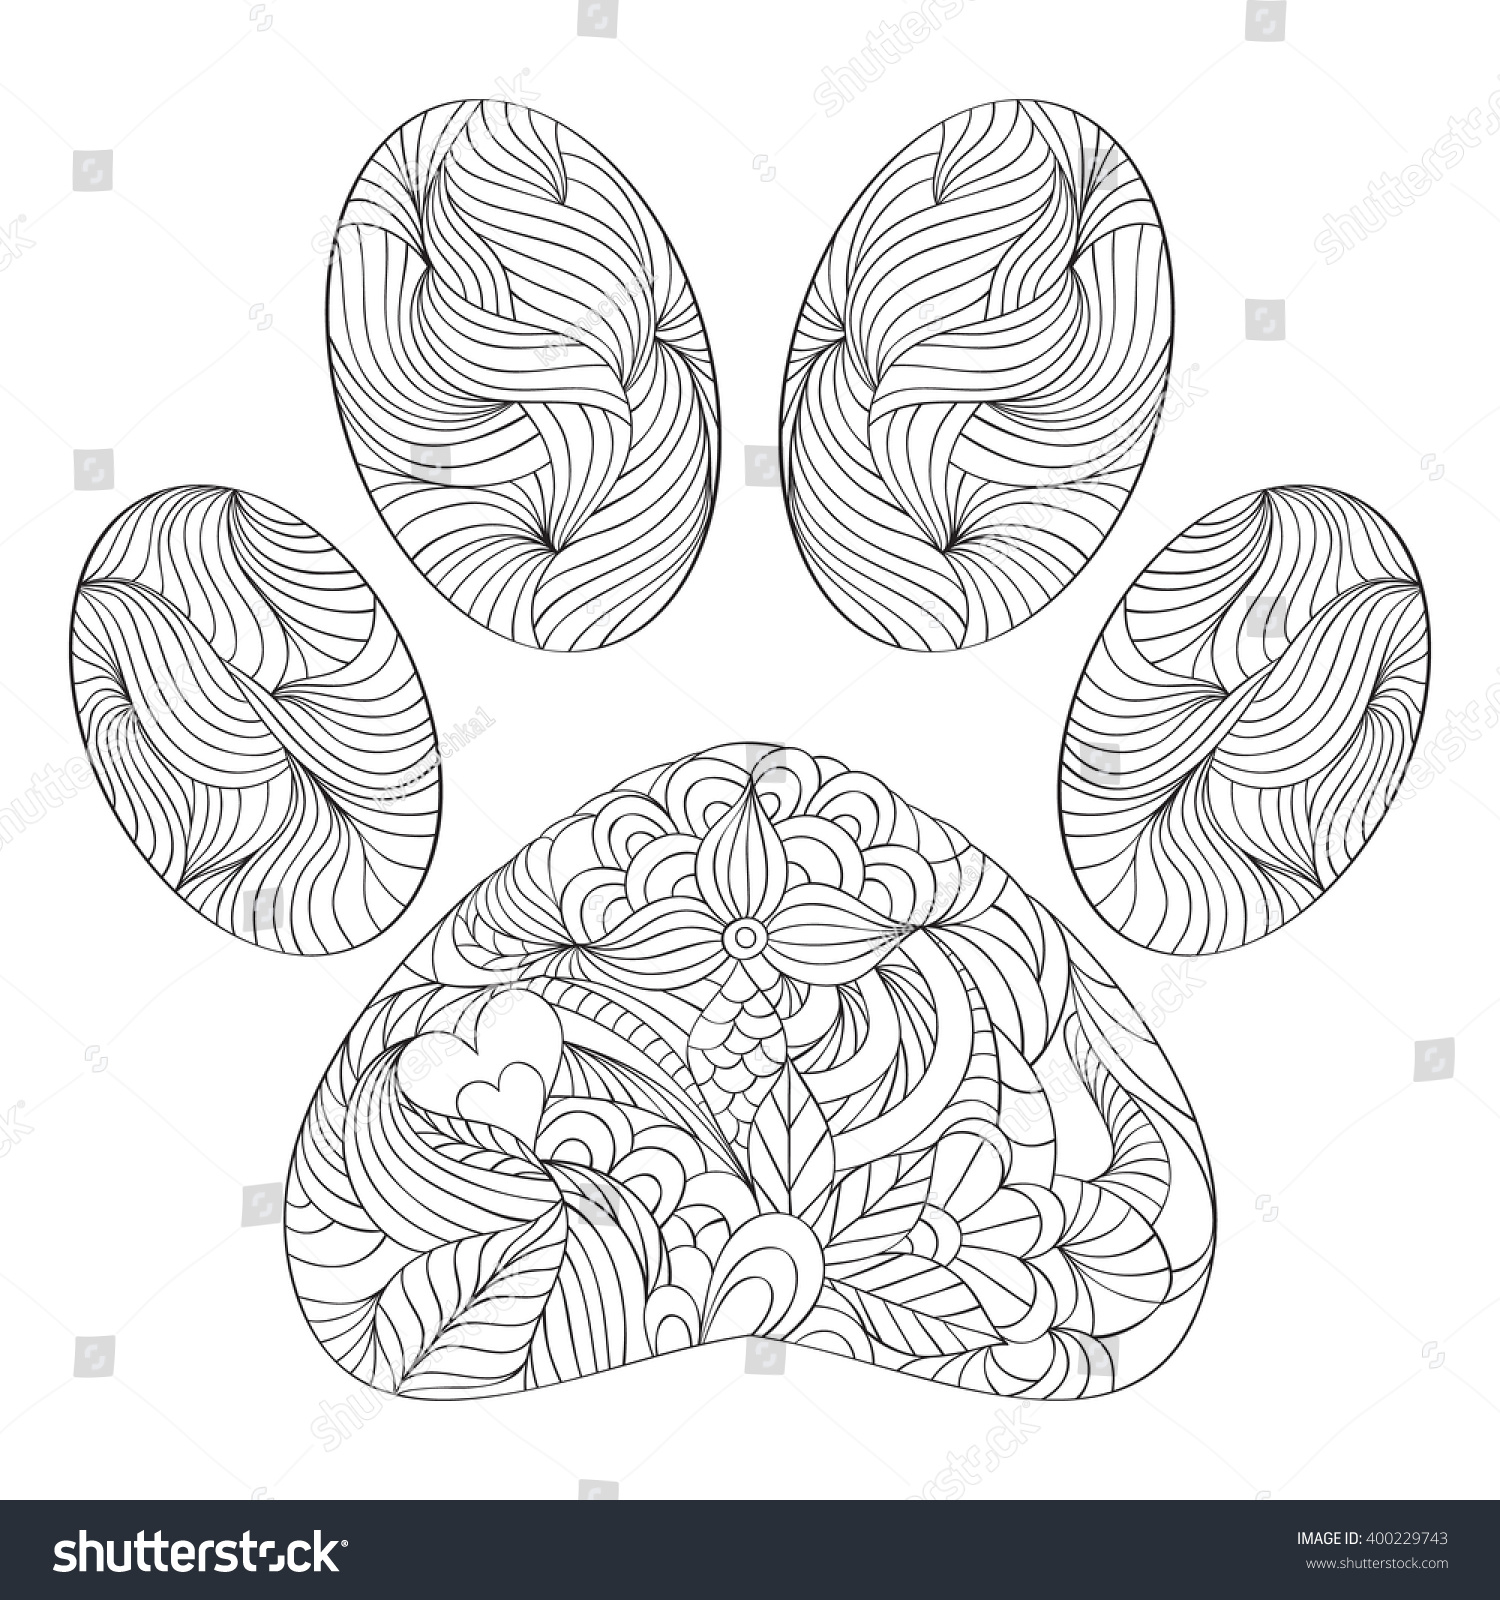 Uncategorized Paw Print Coloring Page vector illustration abstract animal paw print stock of on white background coloring page for adult